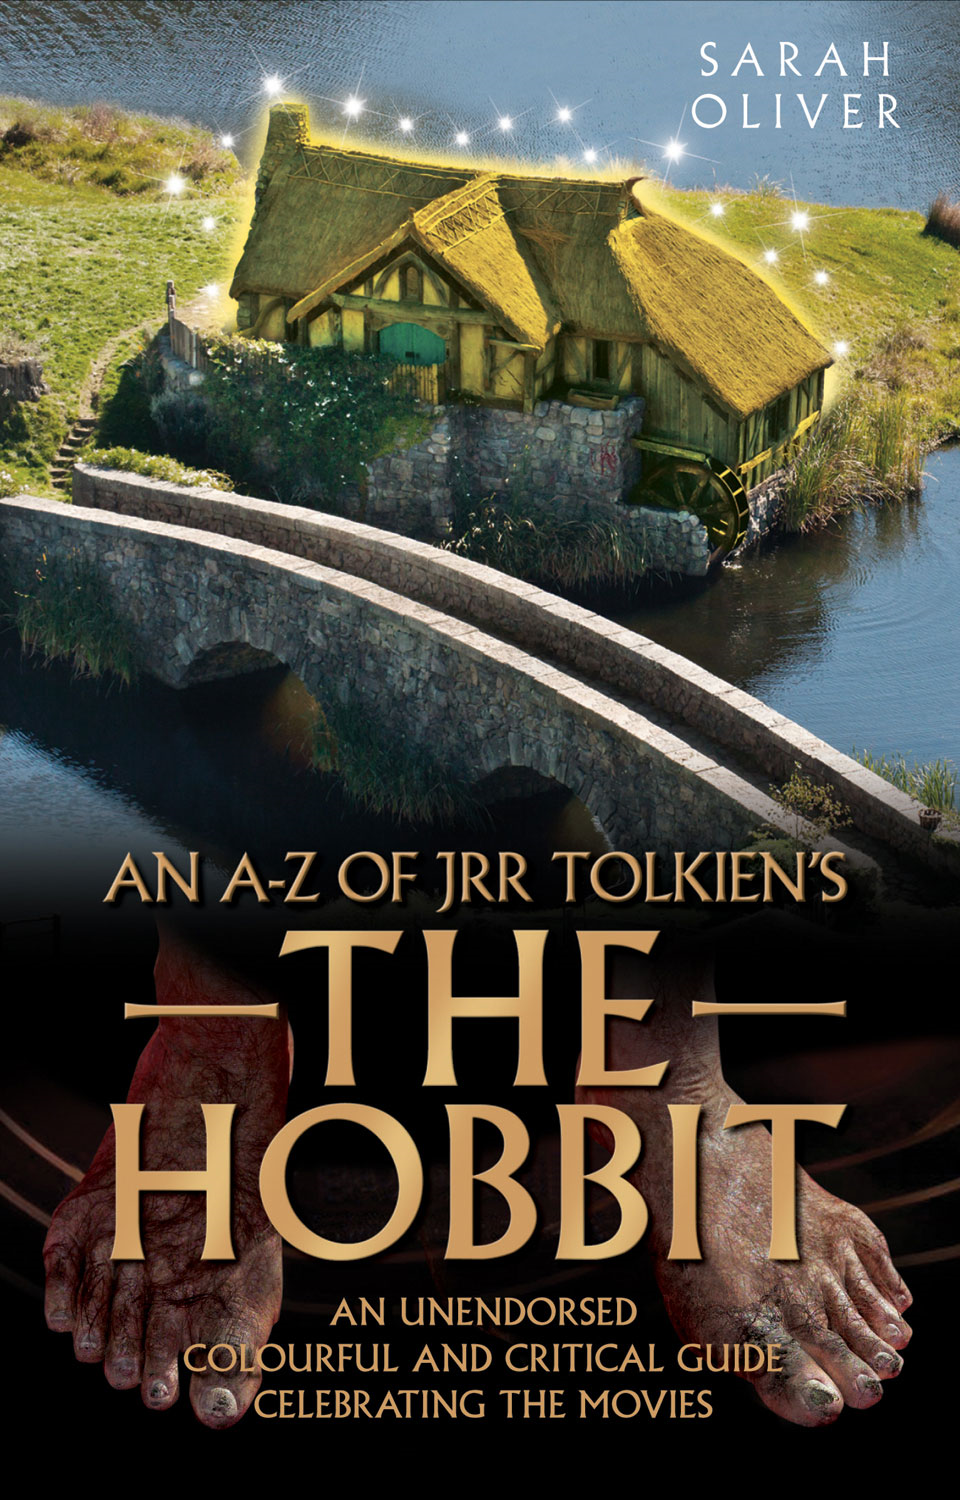 An A-Z of JRR Tolkien's The Hobbit By: Sarah Oliver